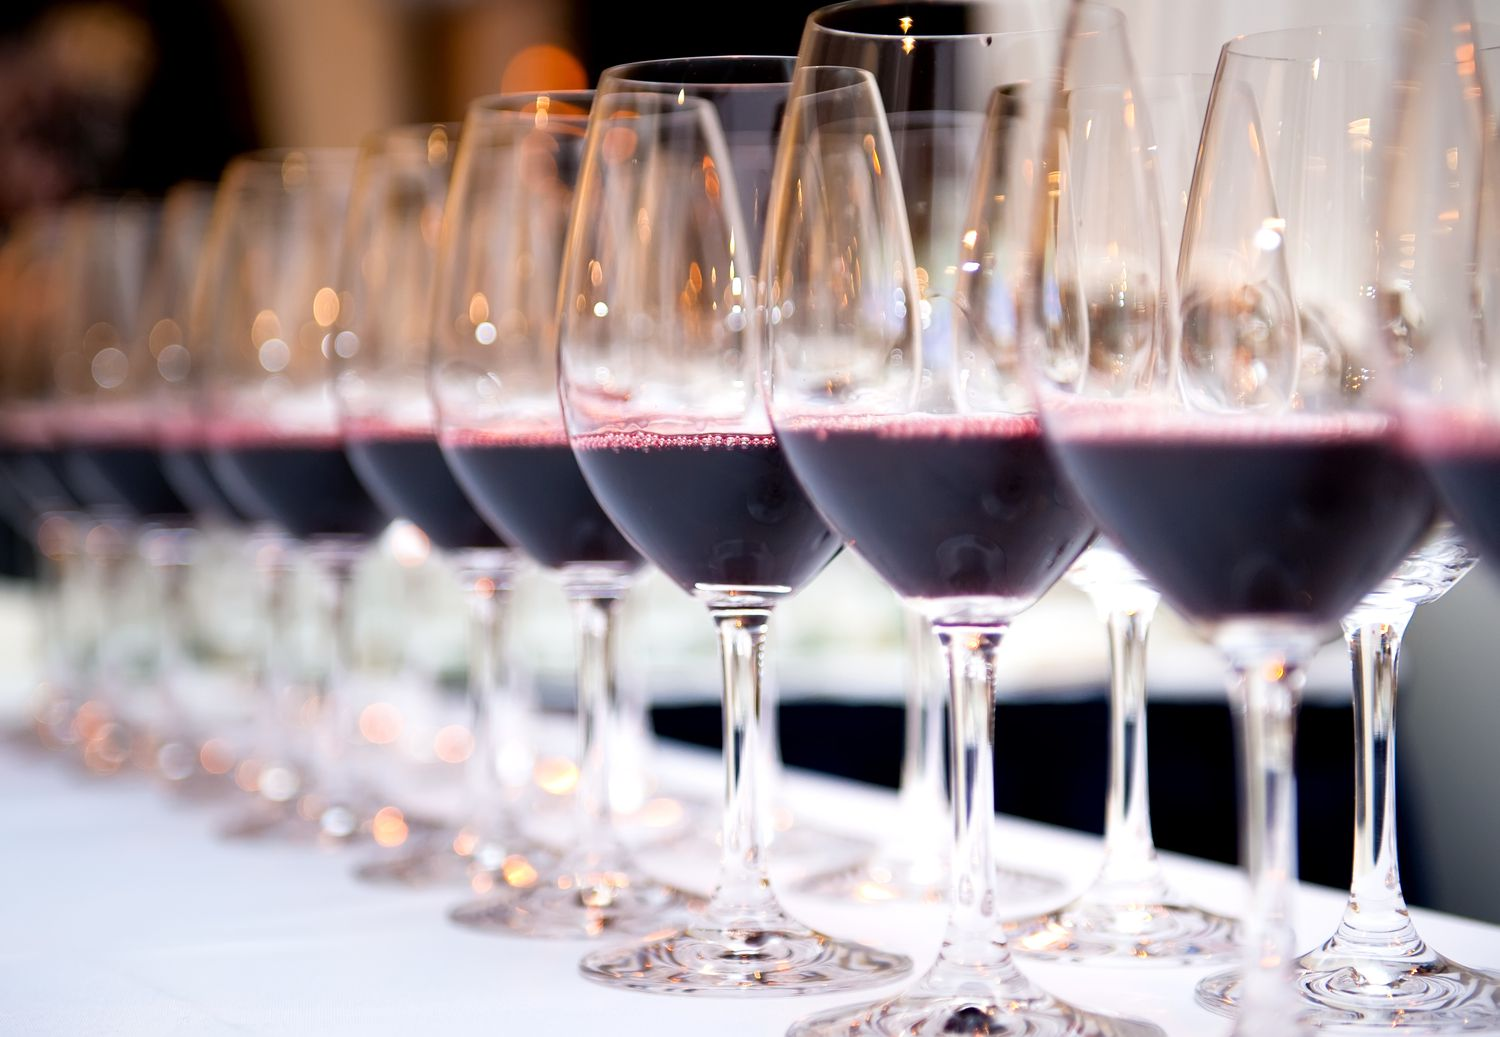 wine glasses lined up